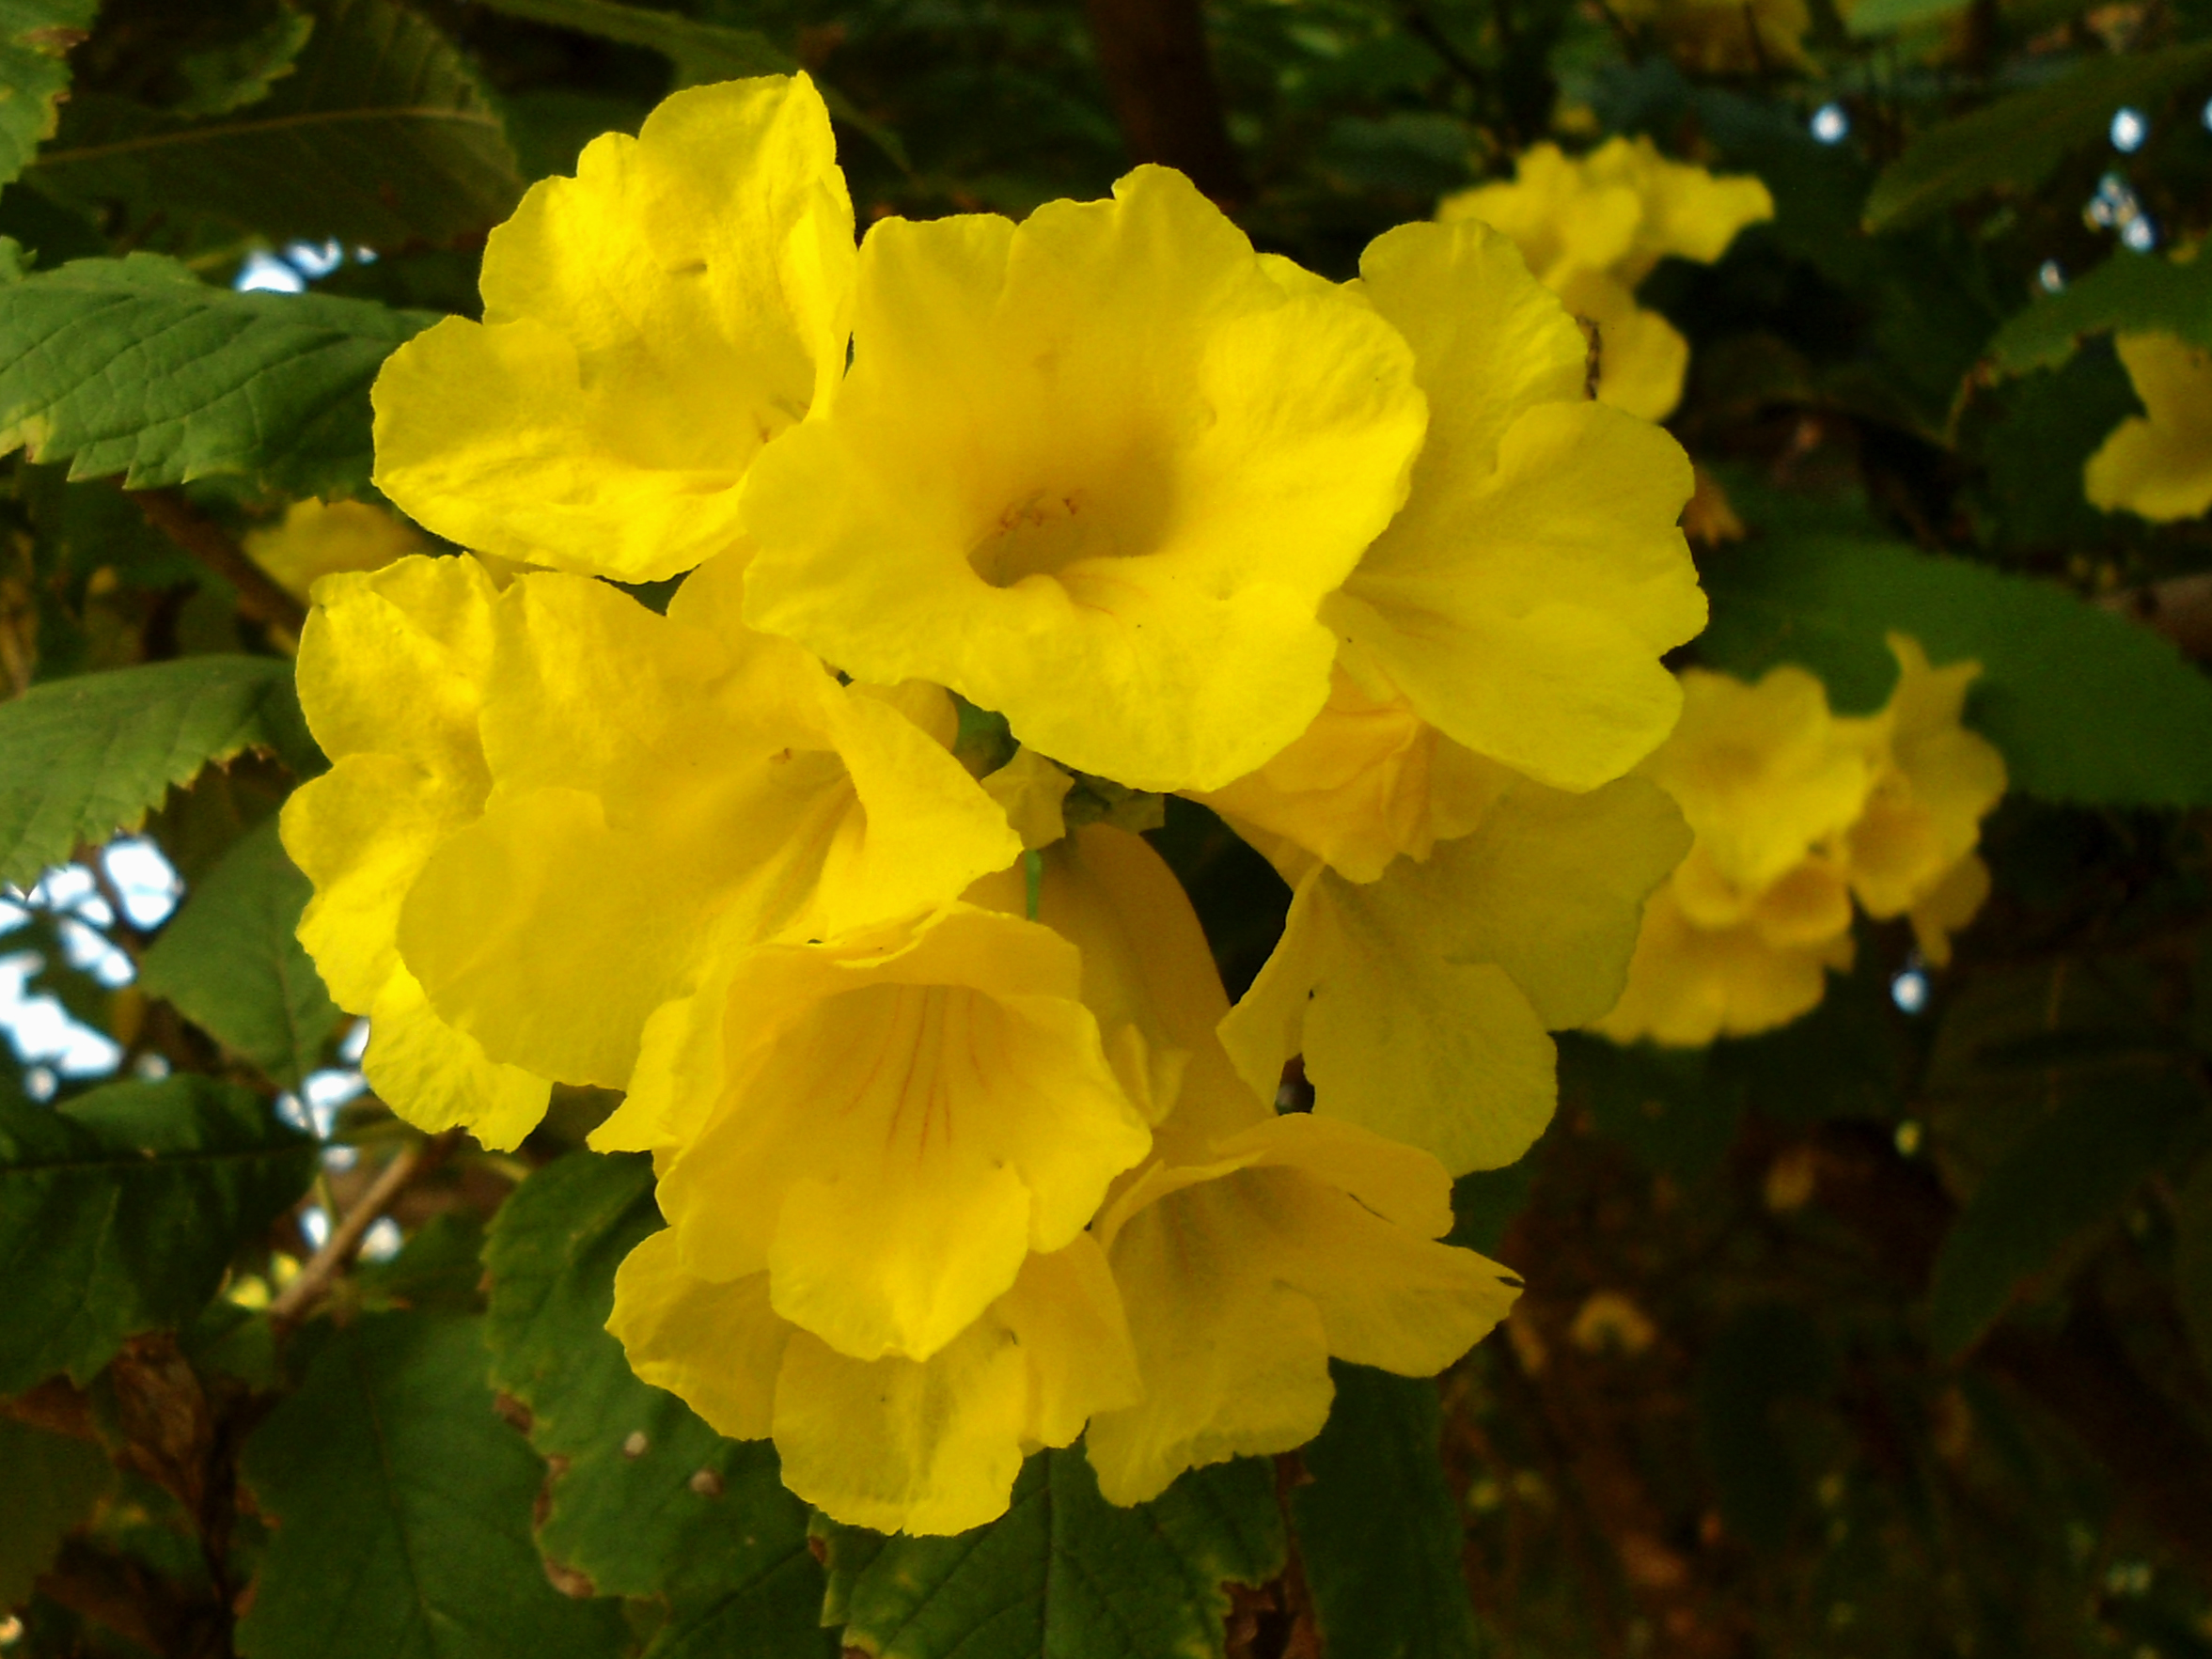 Types of yellow flowers 5 hd wallpaper hdflowerwallpaper types of yellow flowers hd wallpaper mightylinksfo